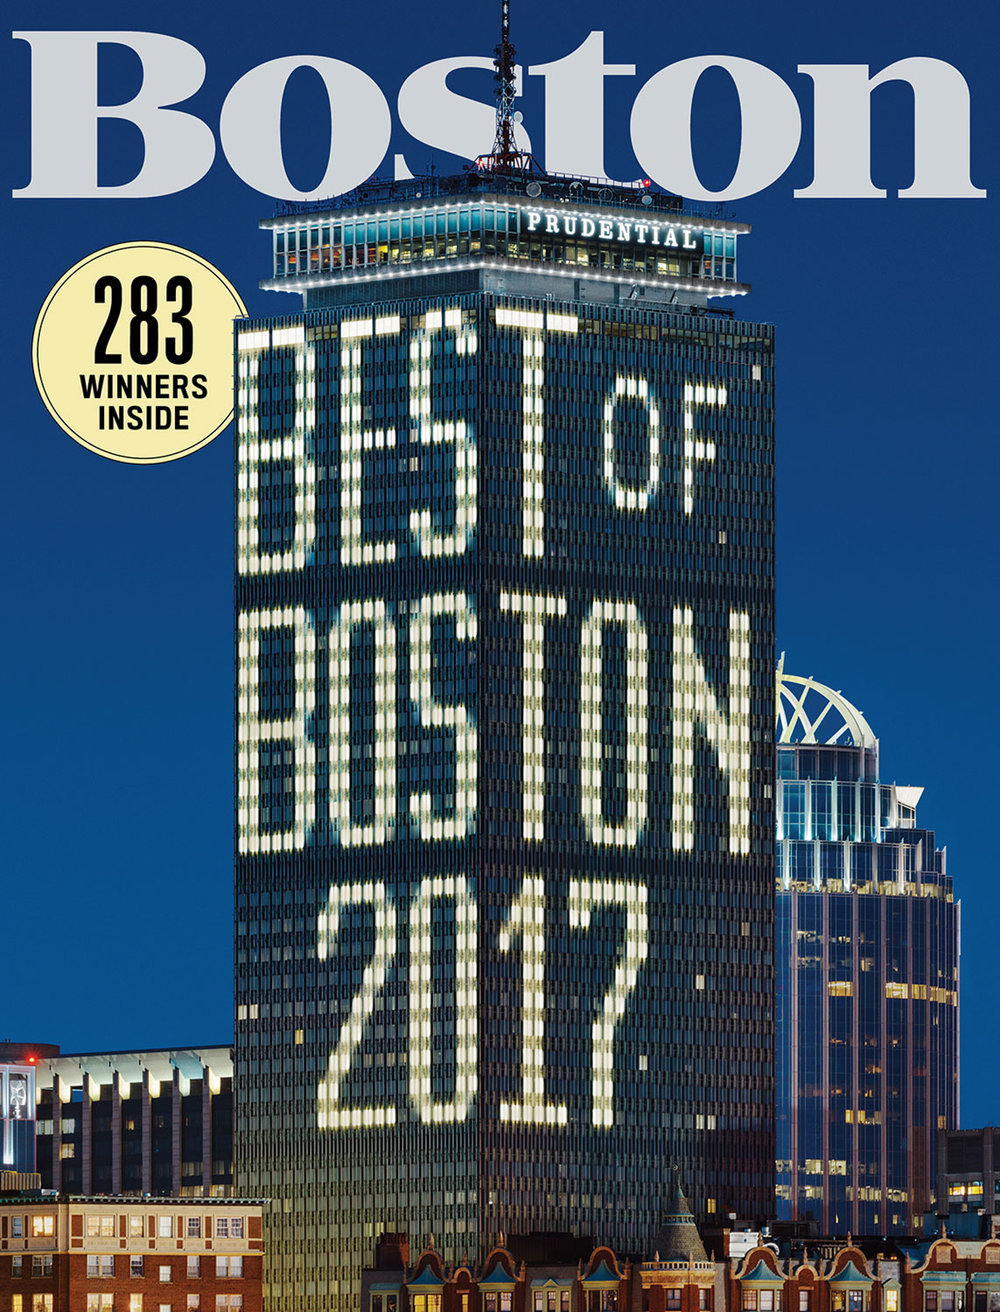 boston-magazine-july-2017-cover-best-of-boston-.jpg